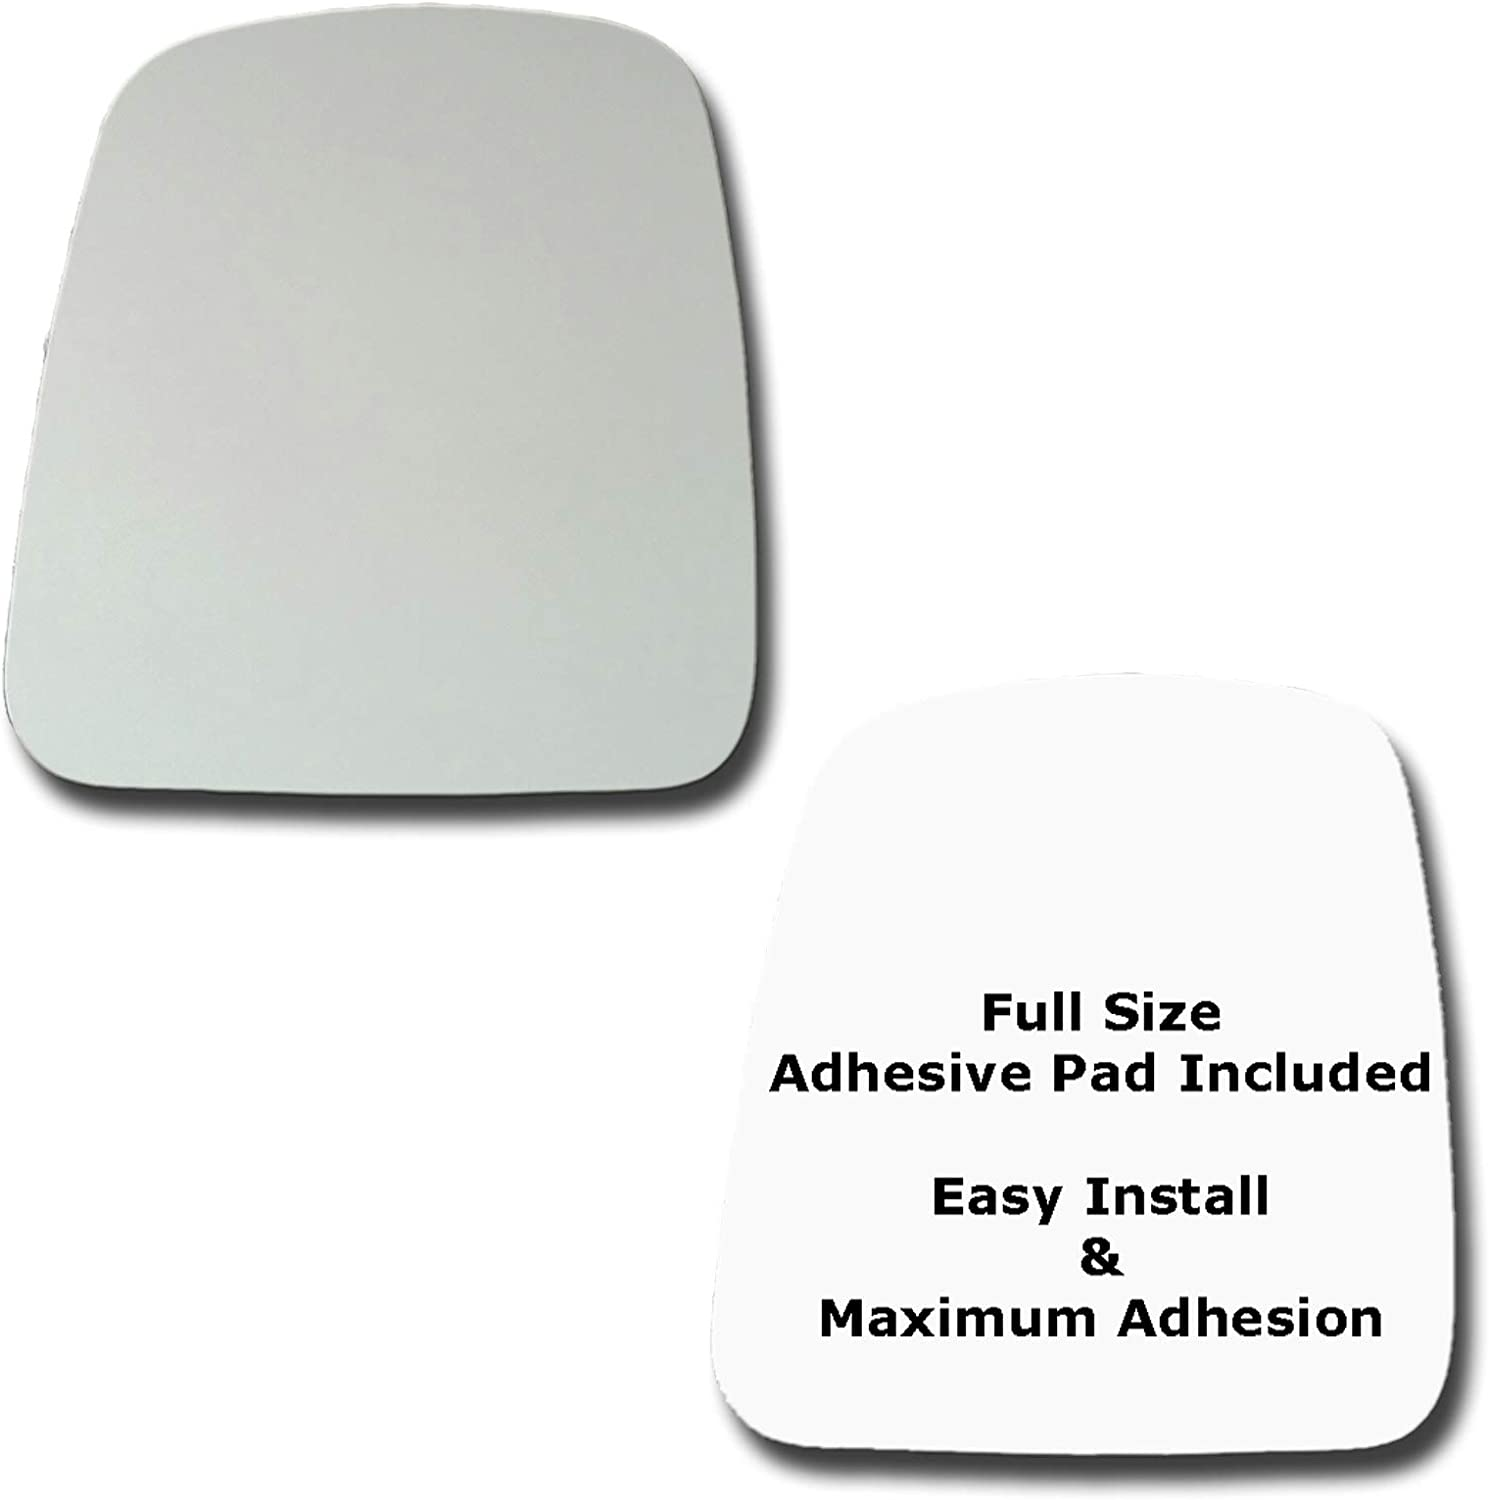 Mirror Glass + Full Size Adhesive Savana for Max 51% OFF 1 Pad ...